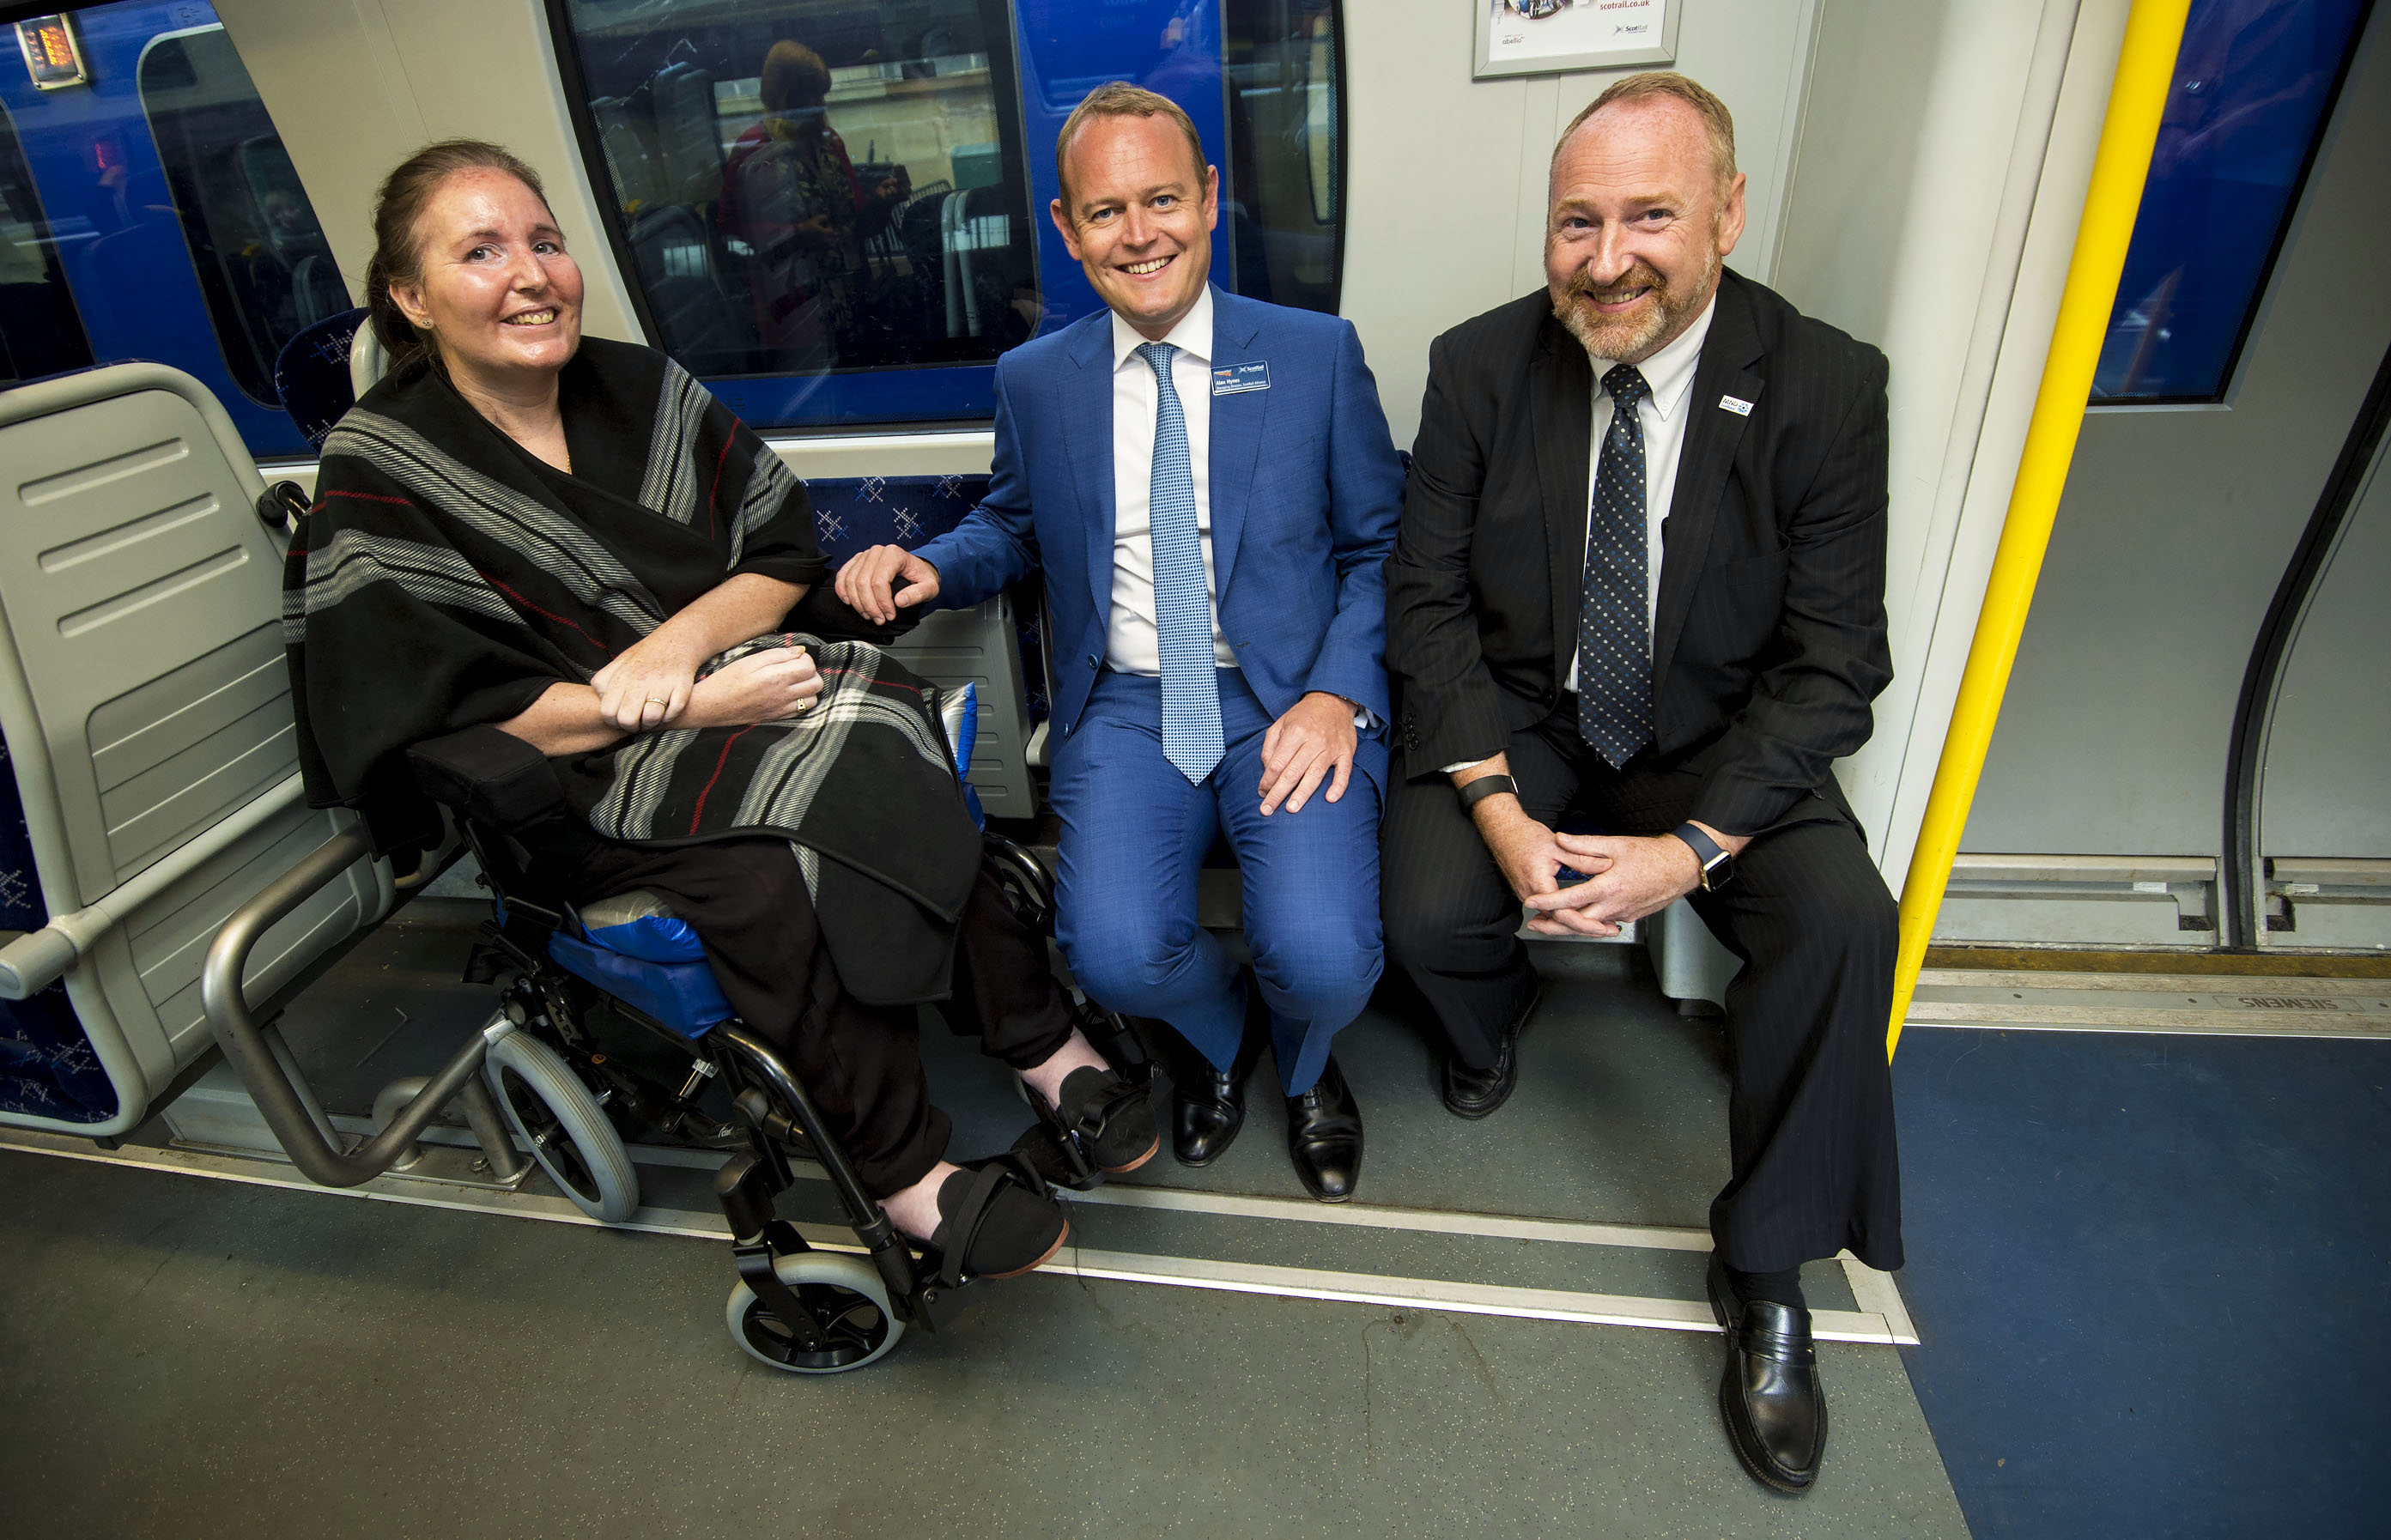 20/07/17 - 17062003 - SCOTRAIL CENTRAL STATION - GLASGOW (L-R) MND patient Alison McDonald, Alex Hynes Managing Director of ScotRail Alliance and Craig Stockton CEO of MND Scotland.